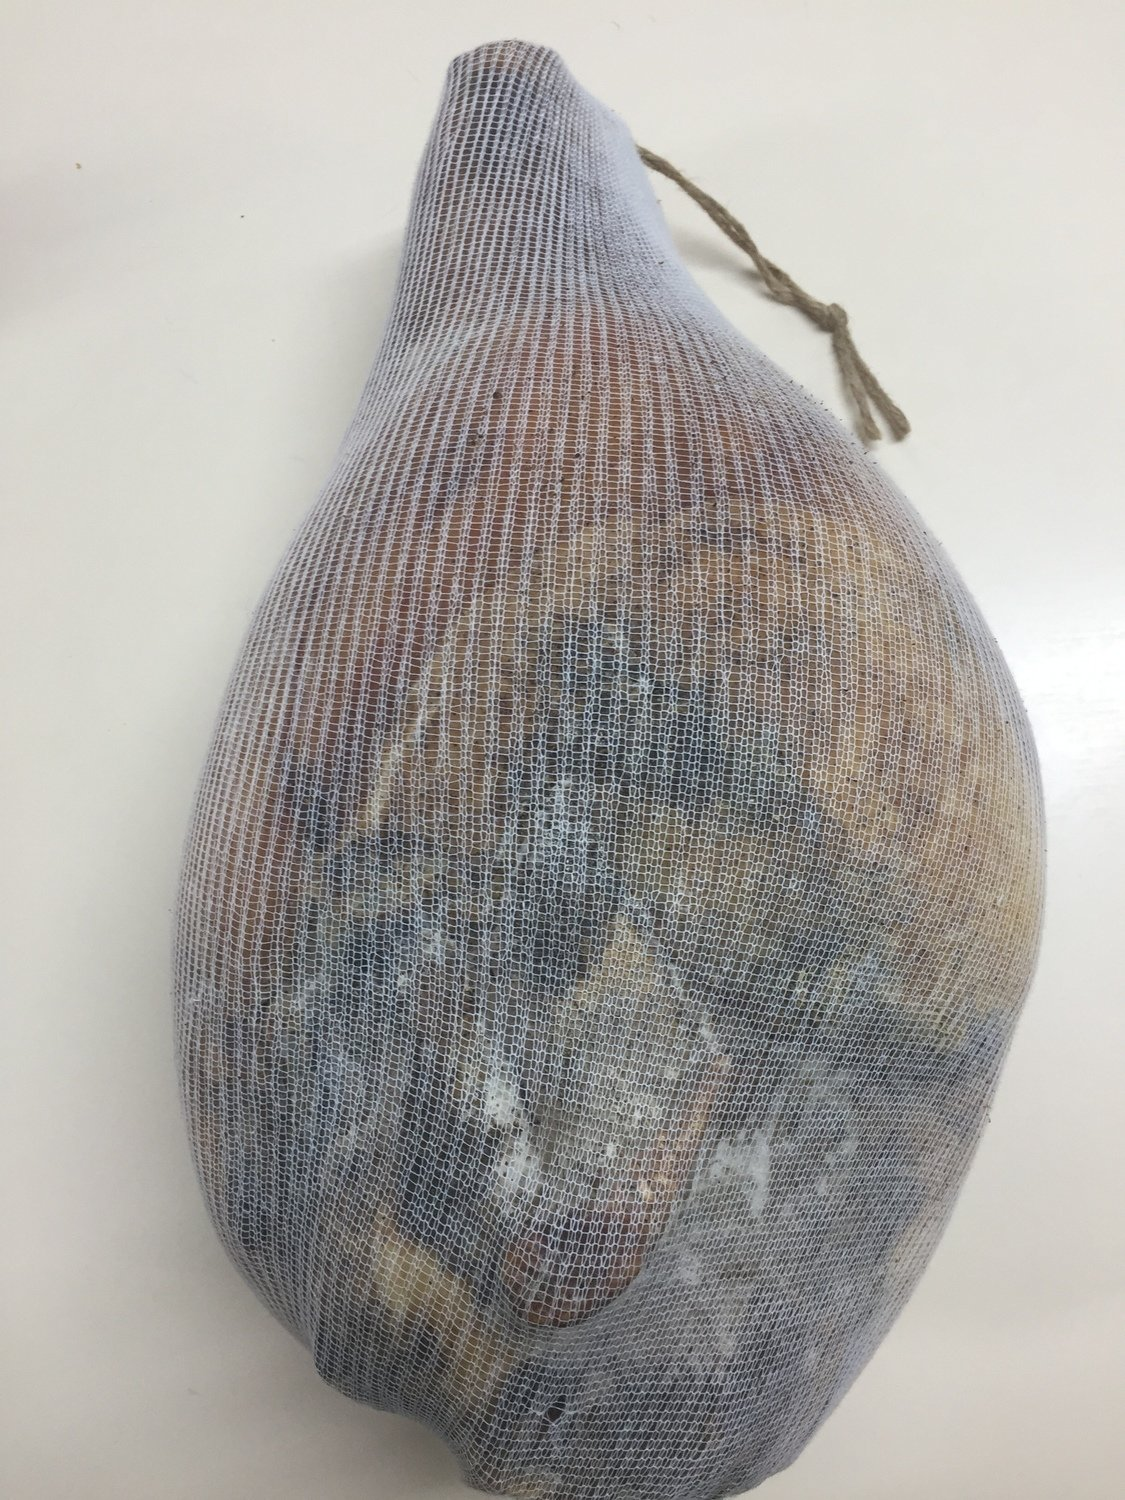 Whole uncooked Country Ham